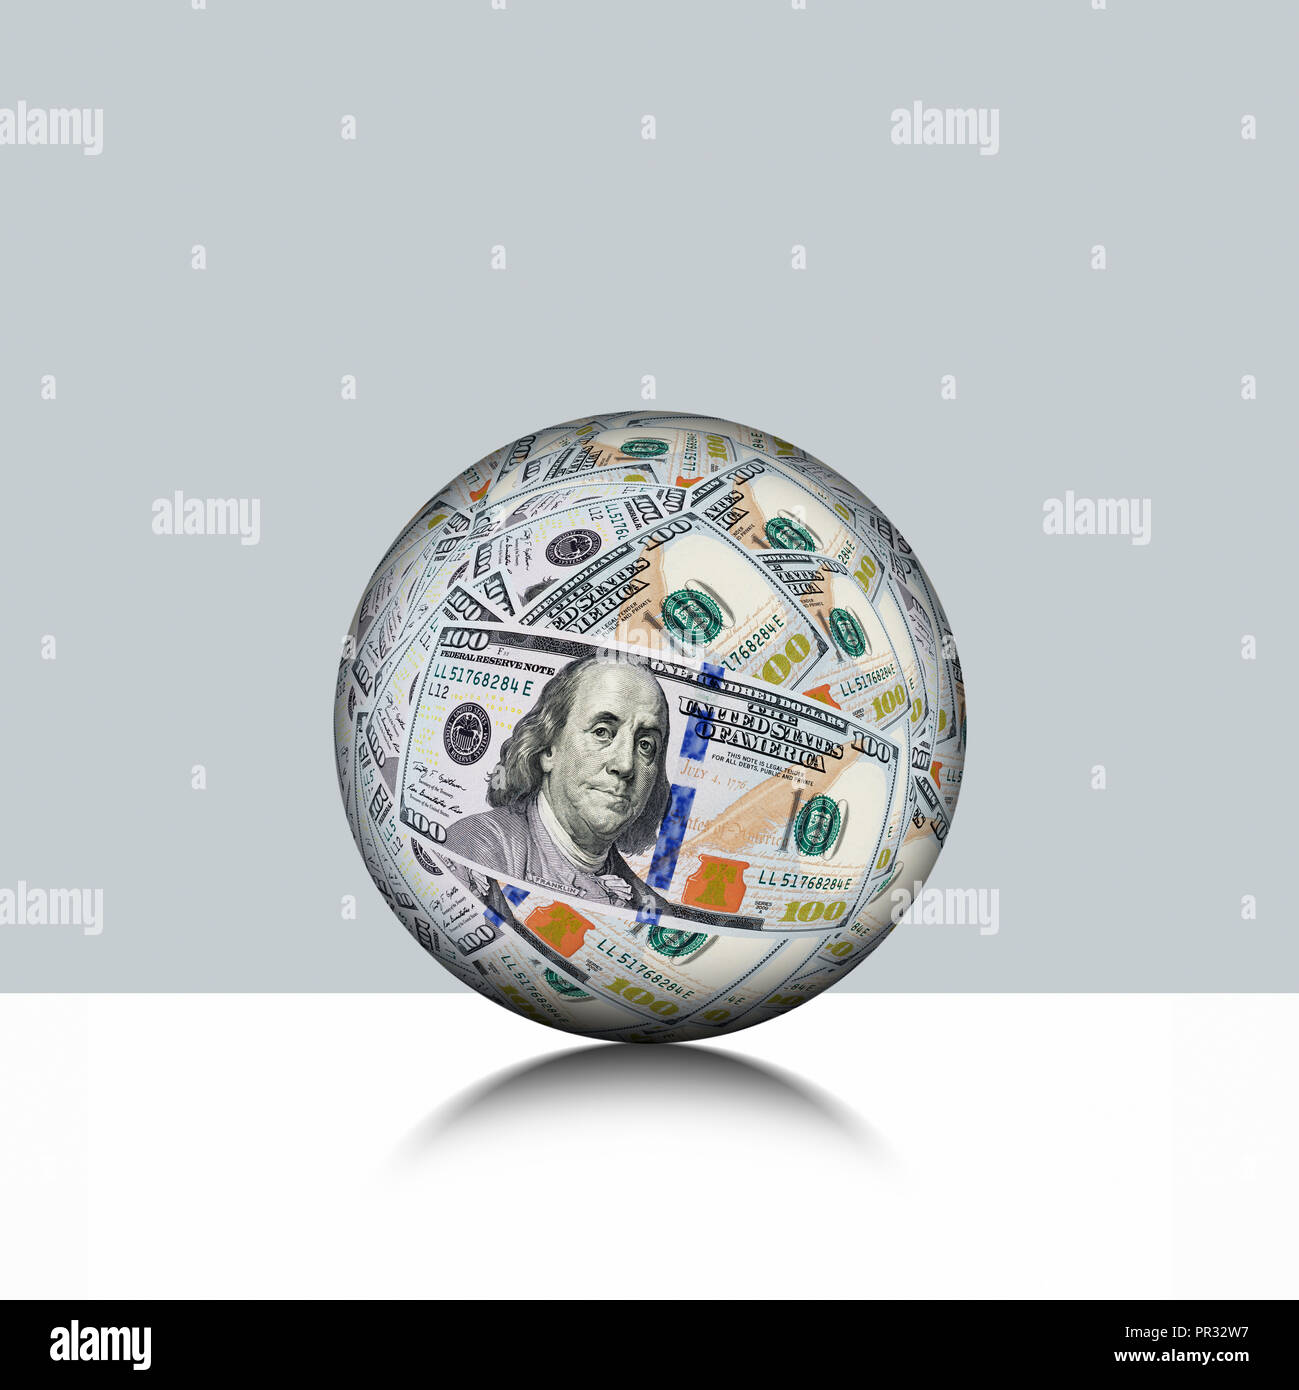 Global Currency, Ball Mede from US USD Currency - Stock Image